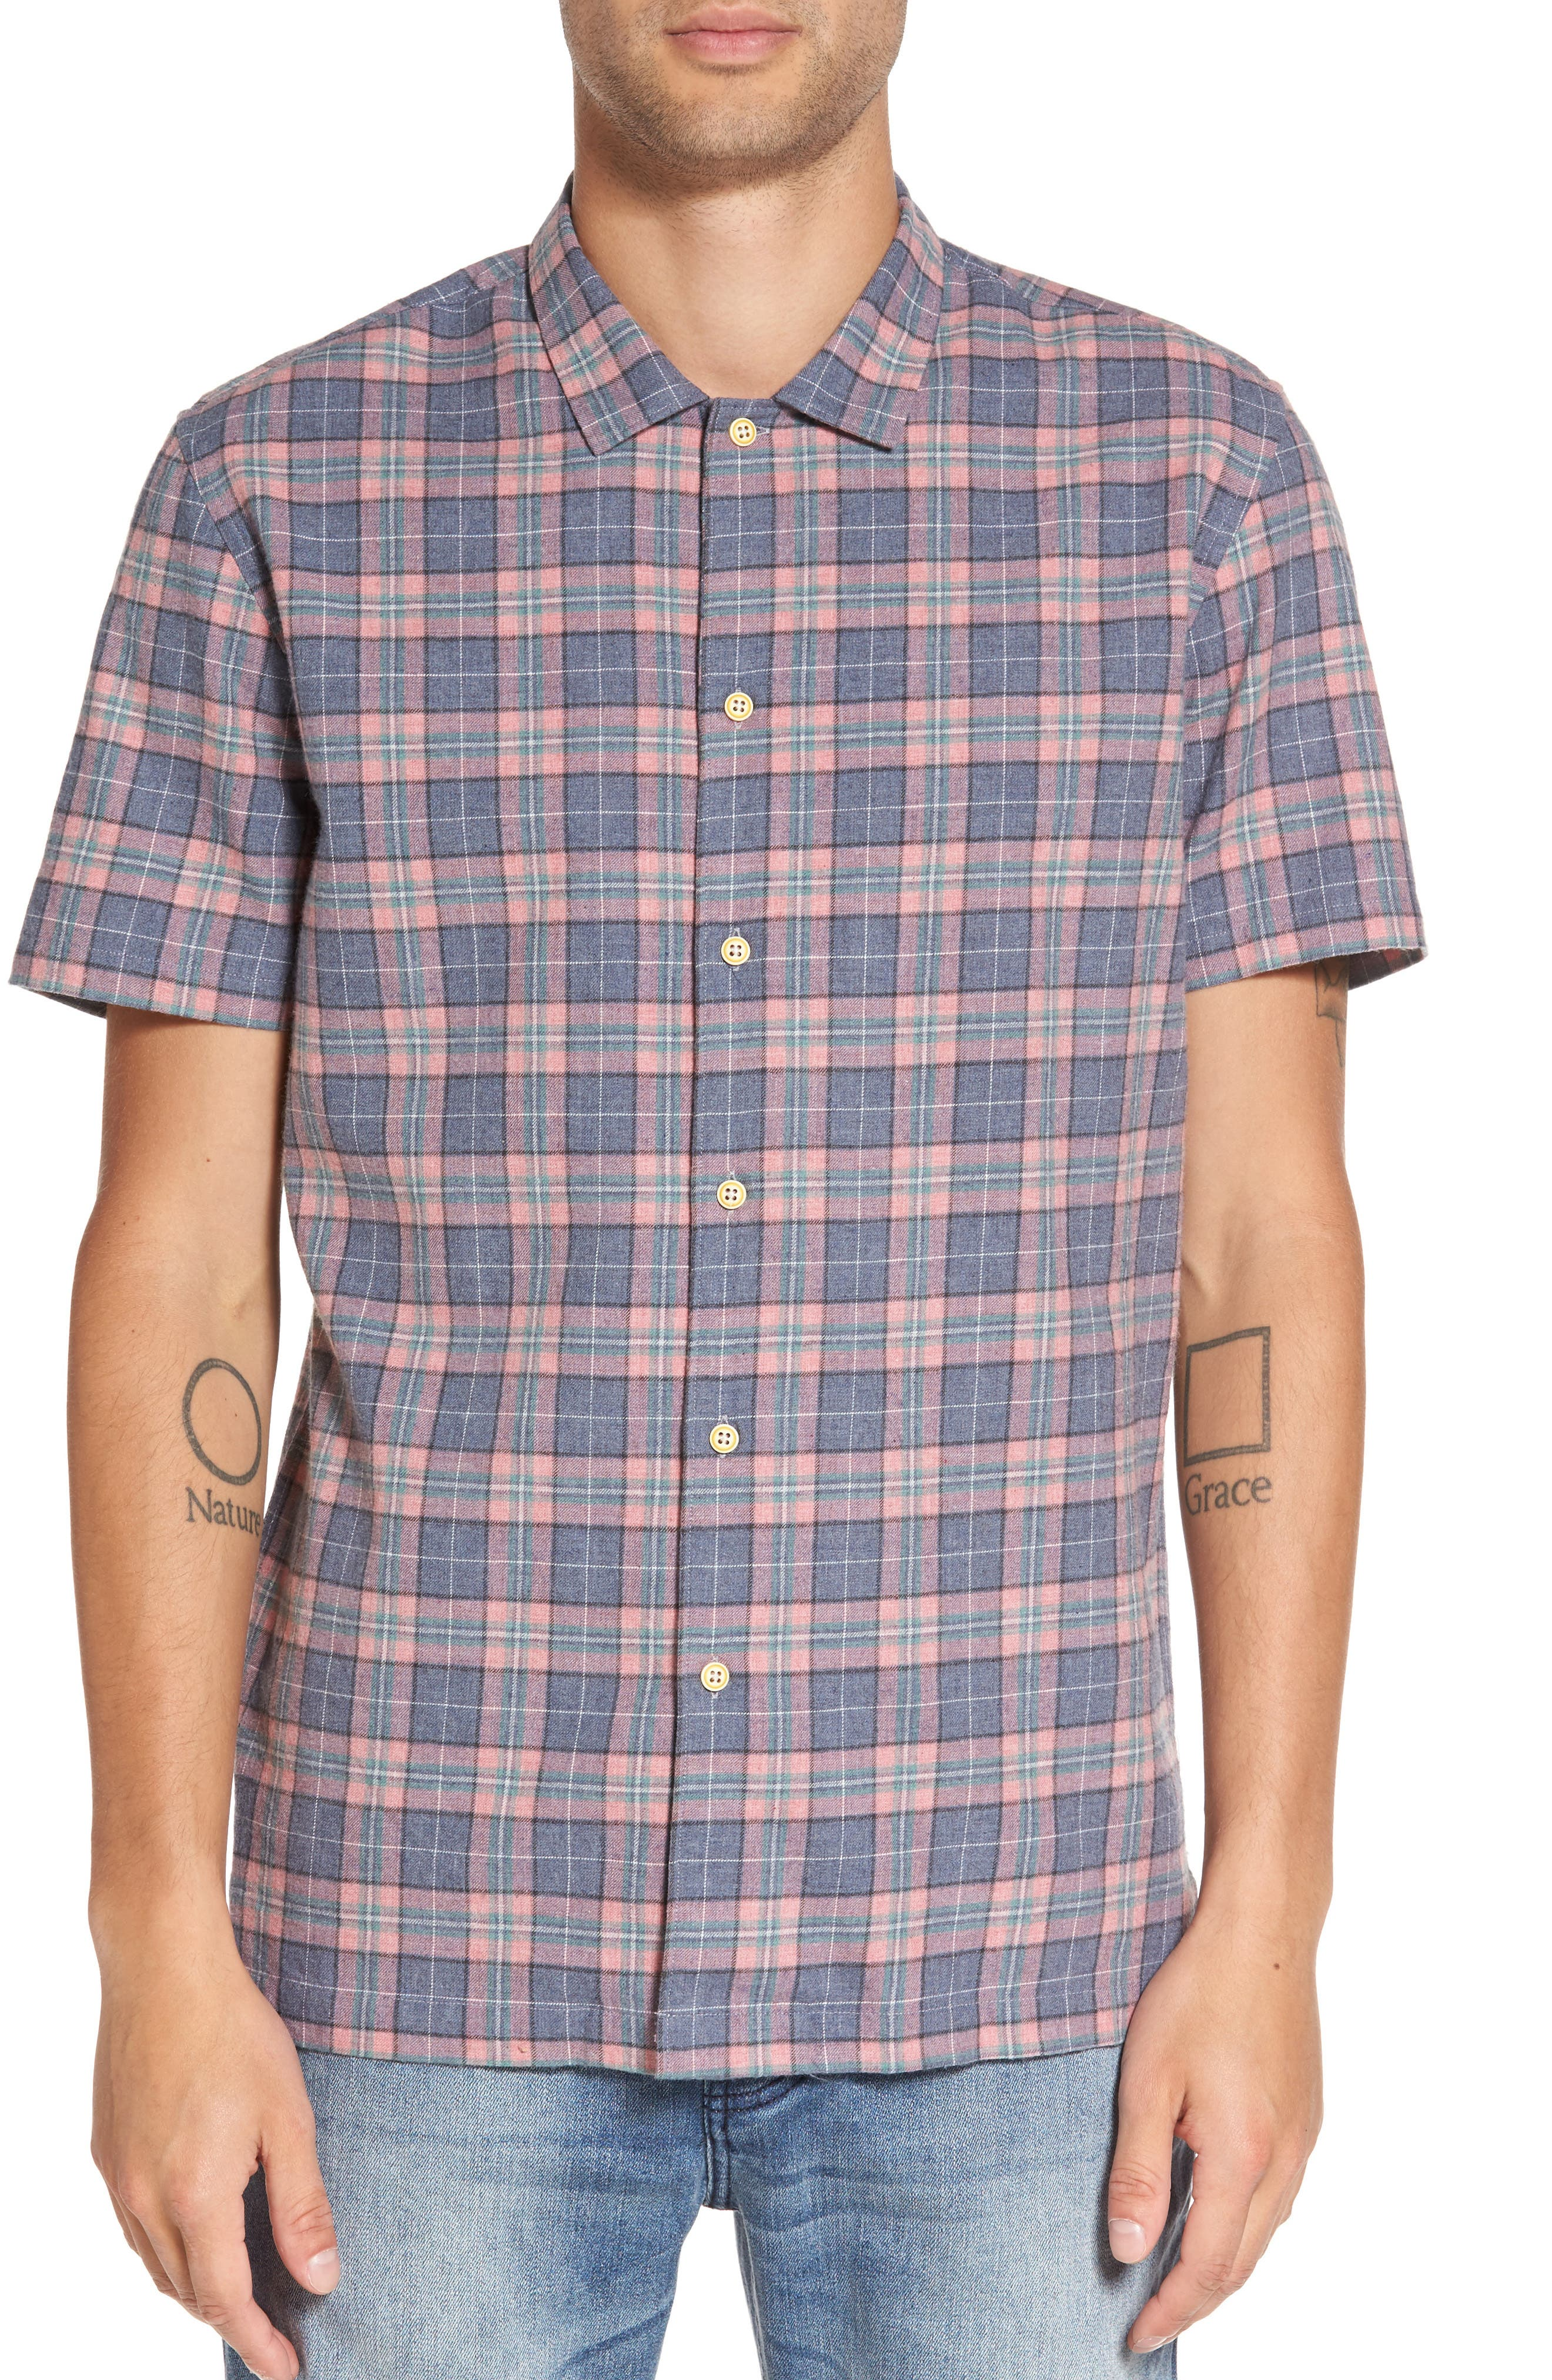 Barney Cools Florida Short Sleeve Plaid Shirt